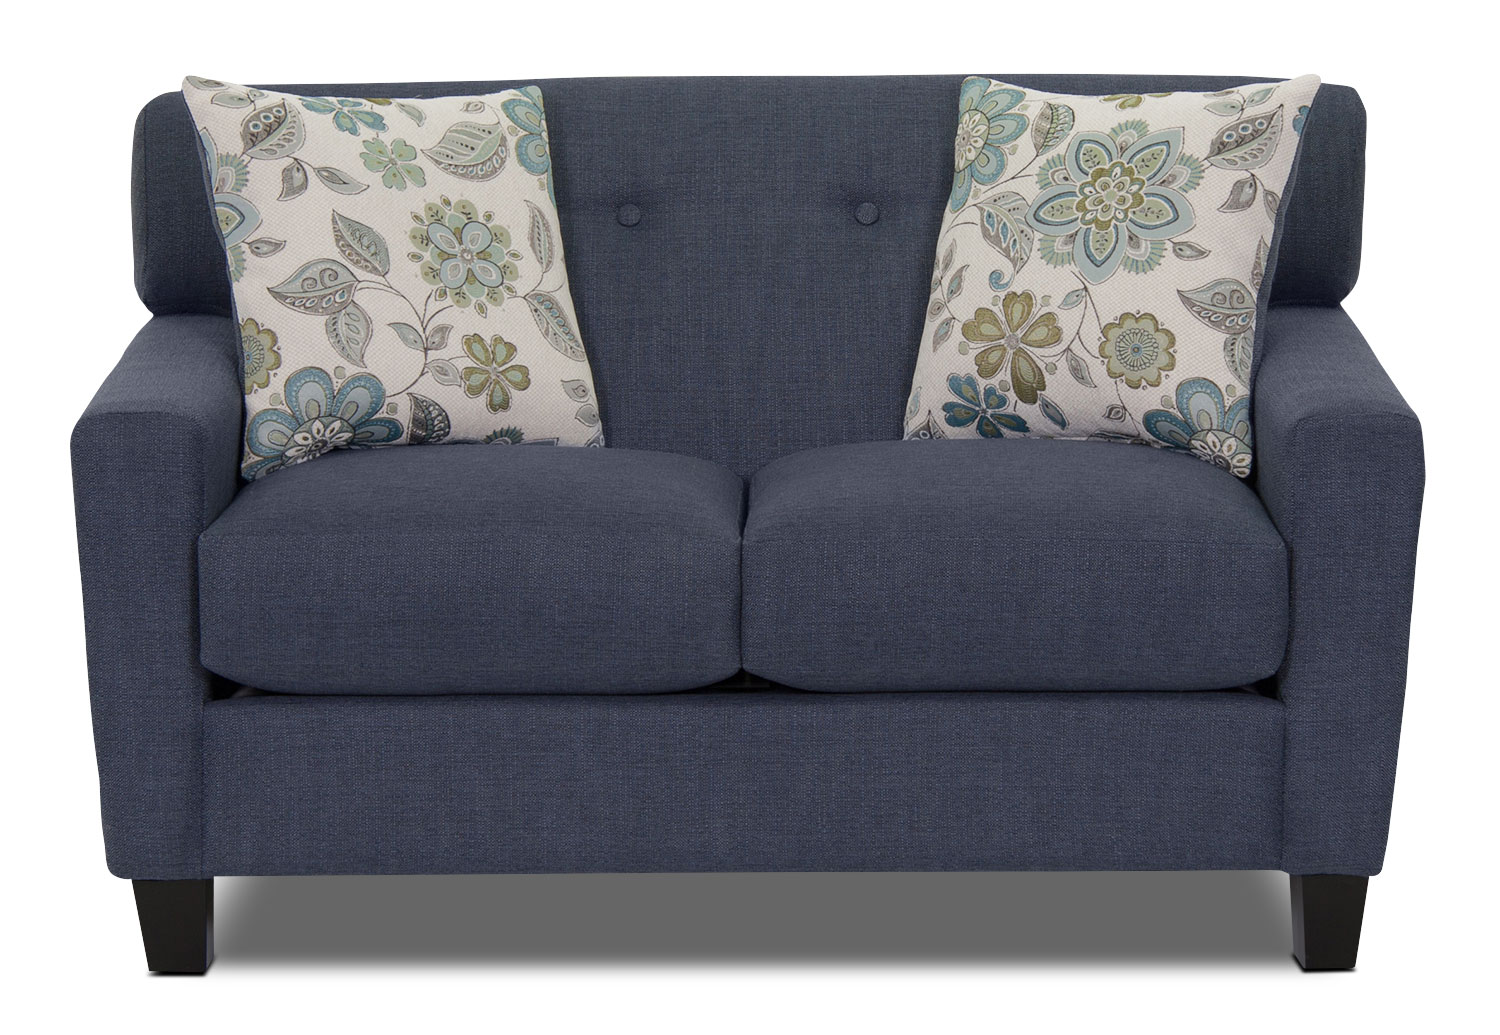 Aubrey Linen-Look Fabric Loveseat - Indigo